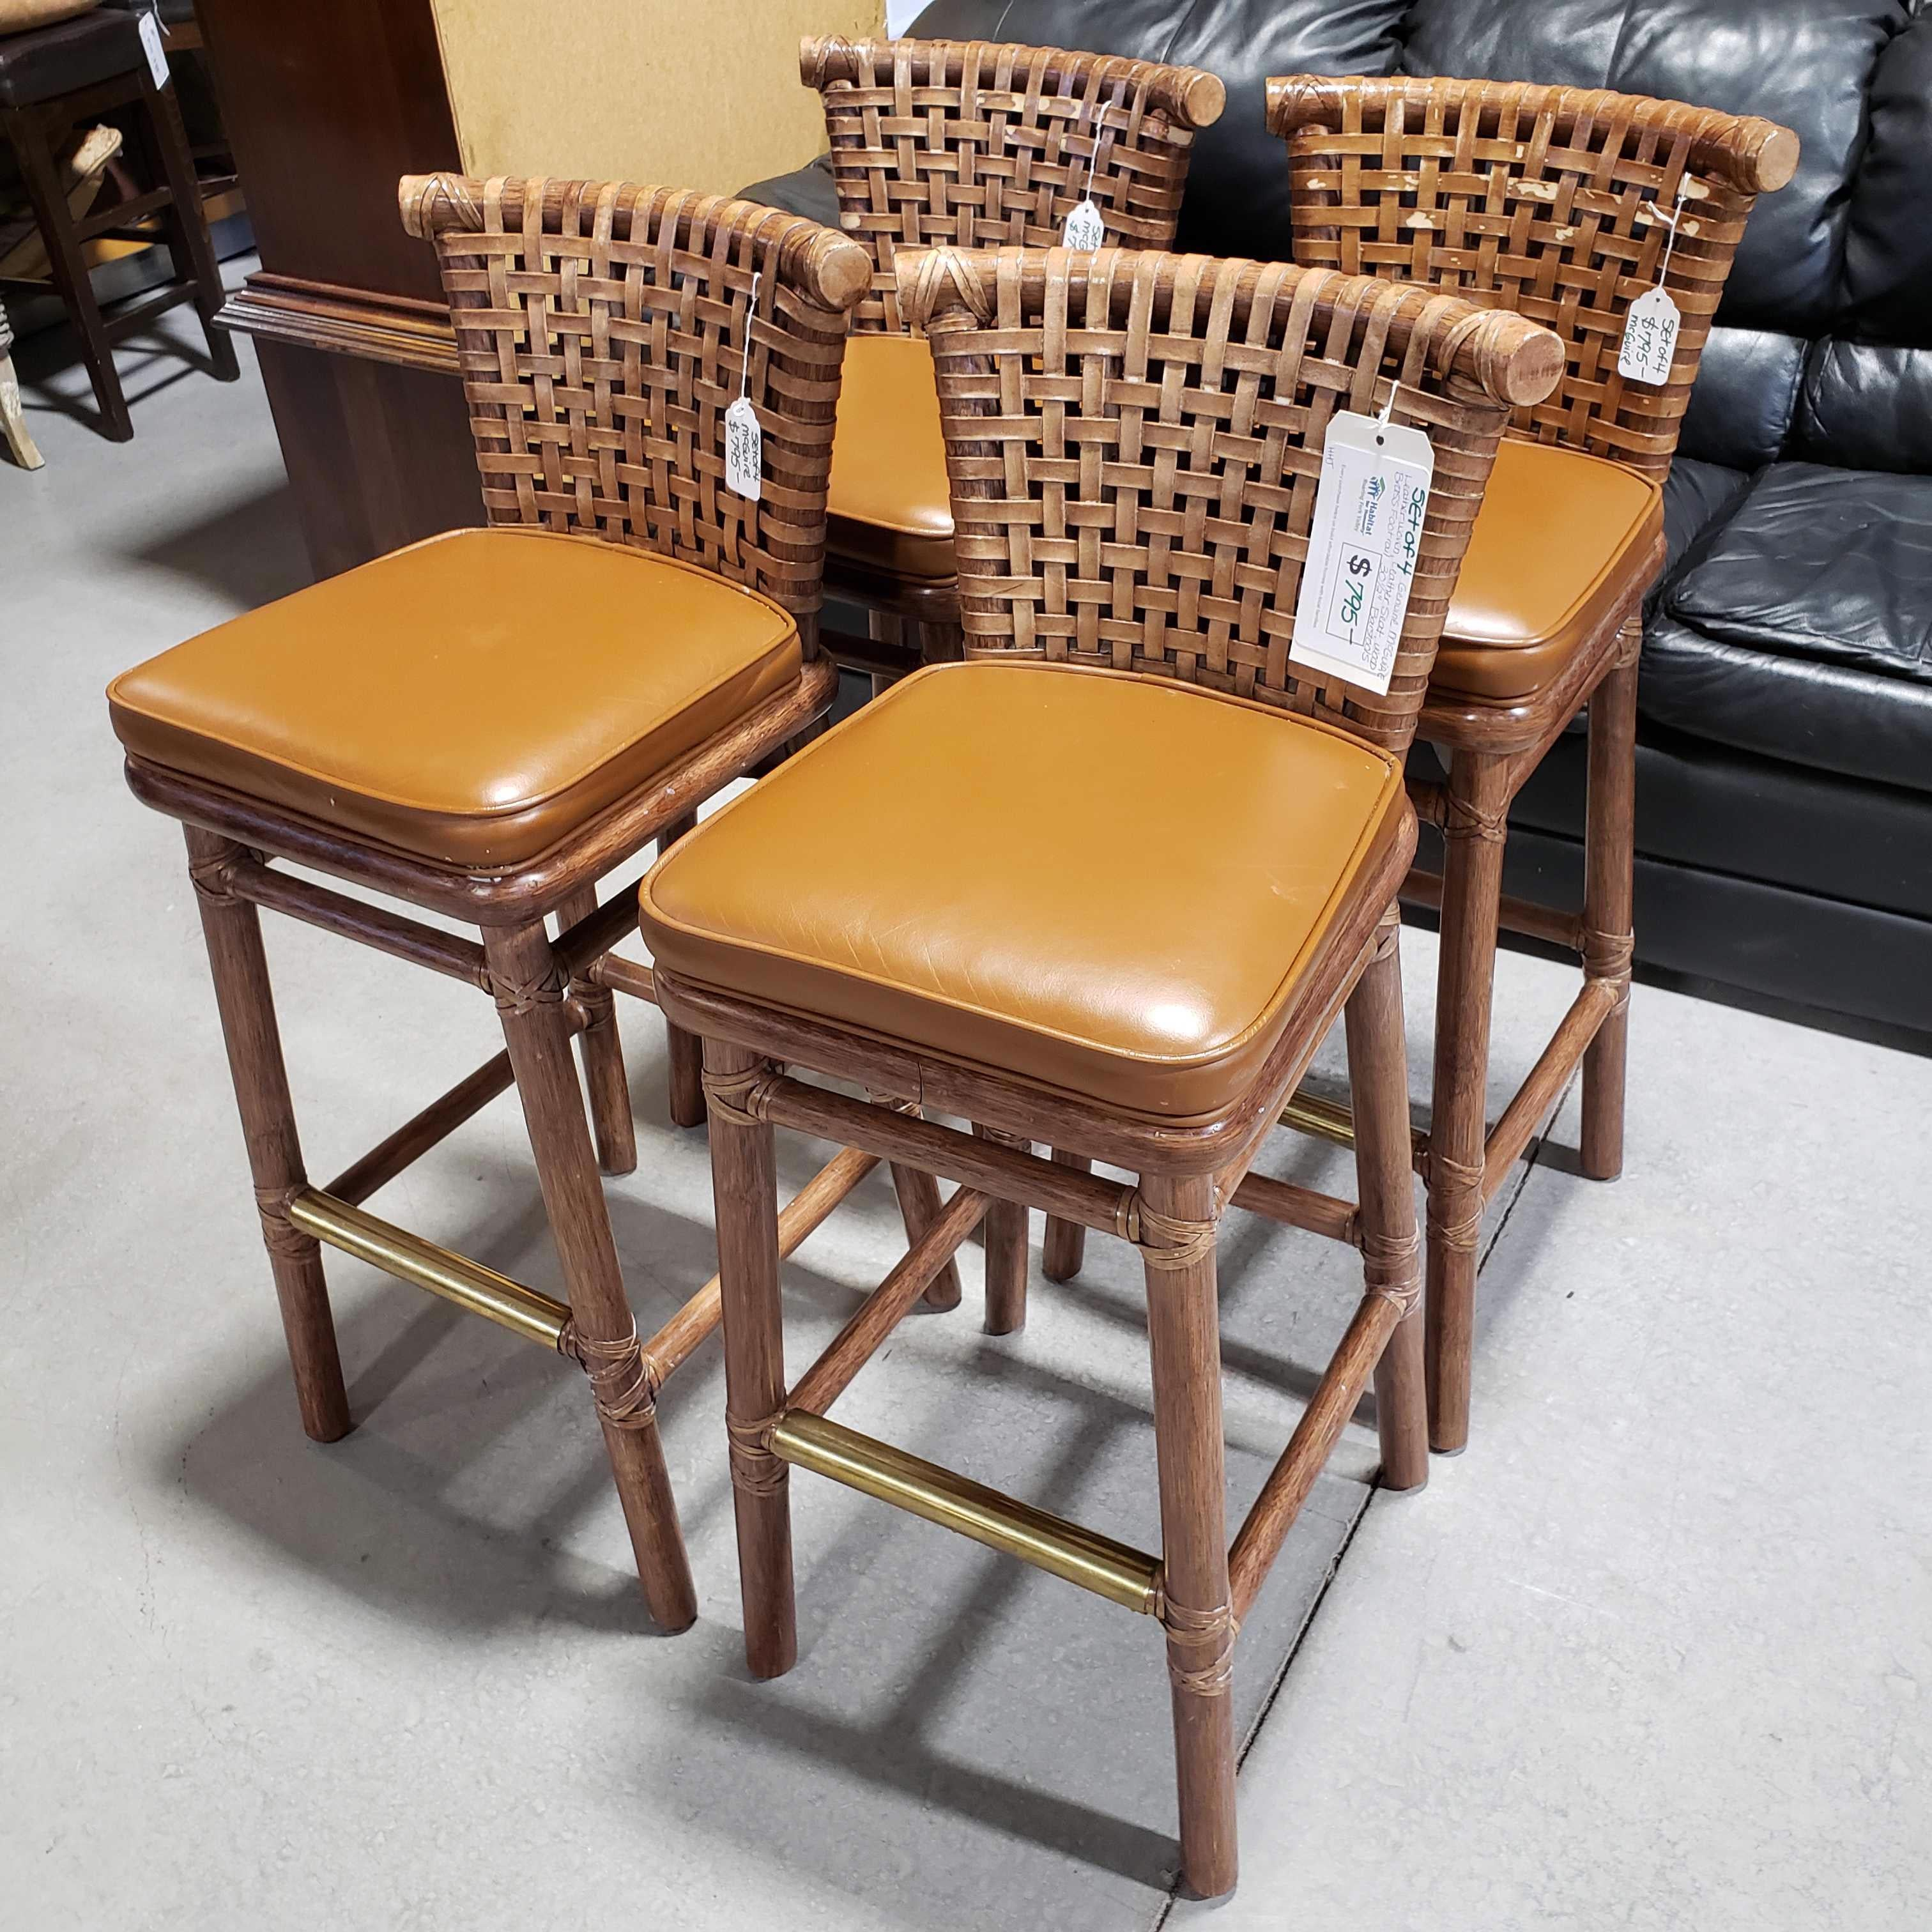 "Set of 4 30.5"" Genuine McGuire Leather Woven Leather Seat Wood Brass Foot Rail Barstools"